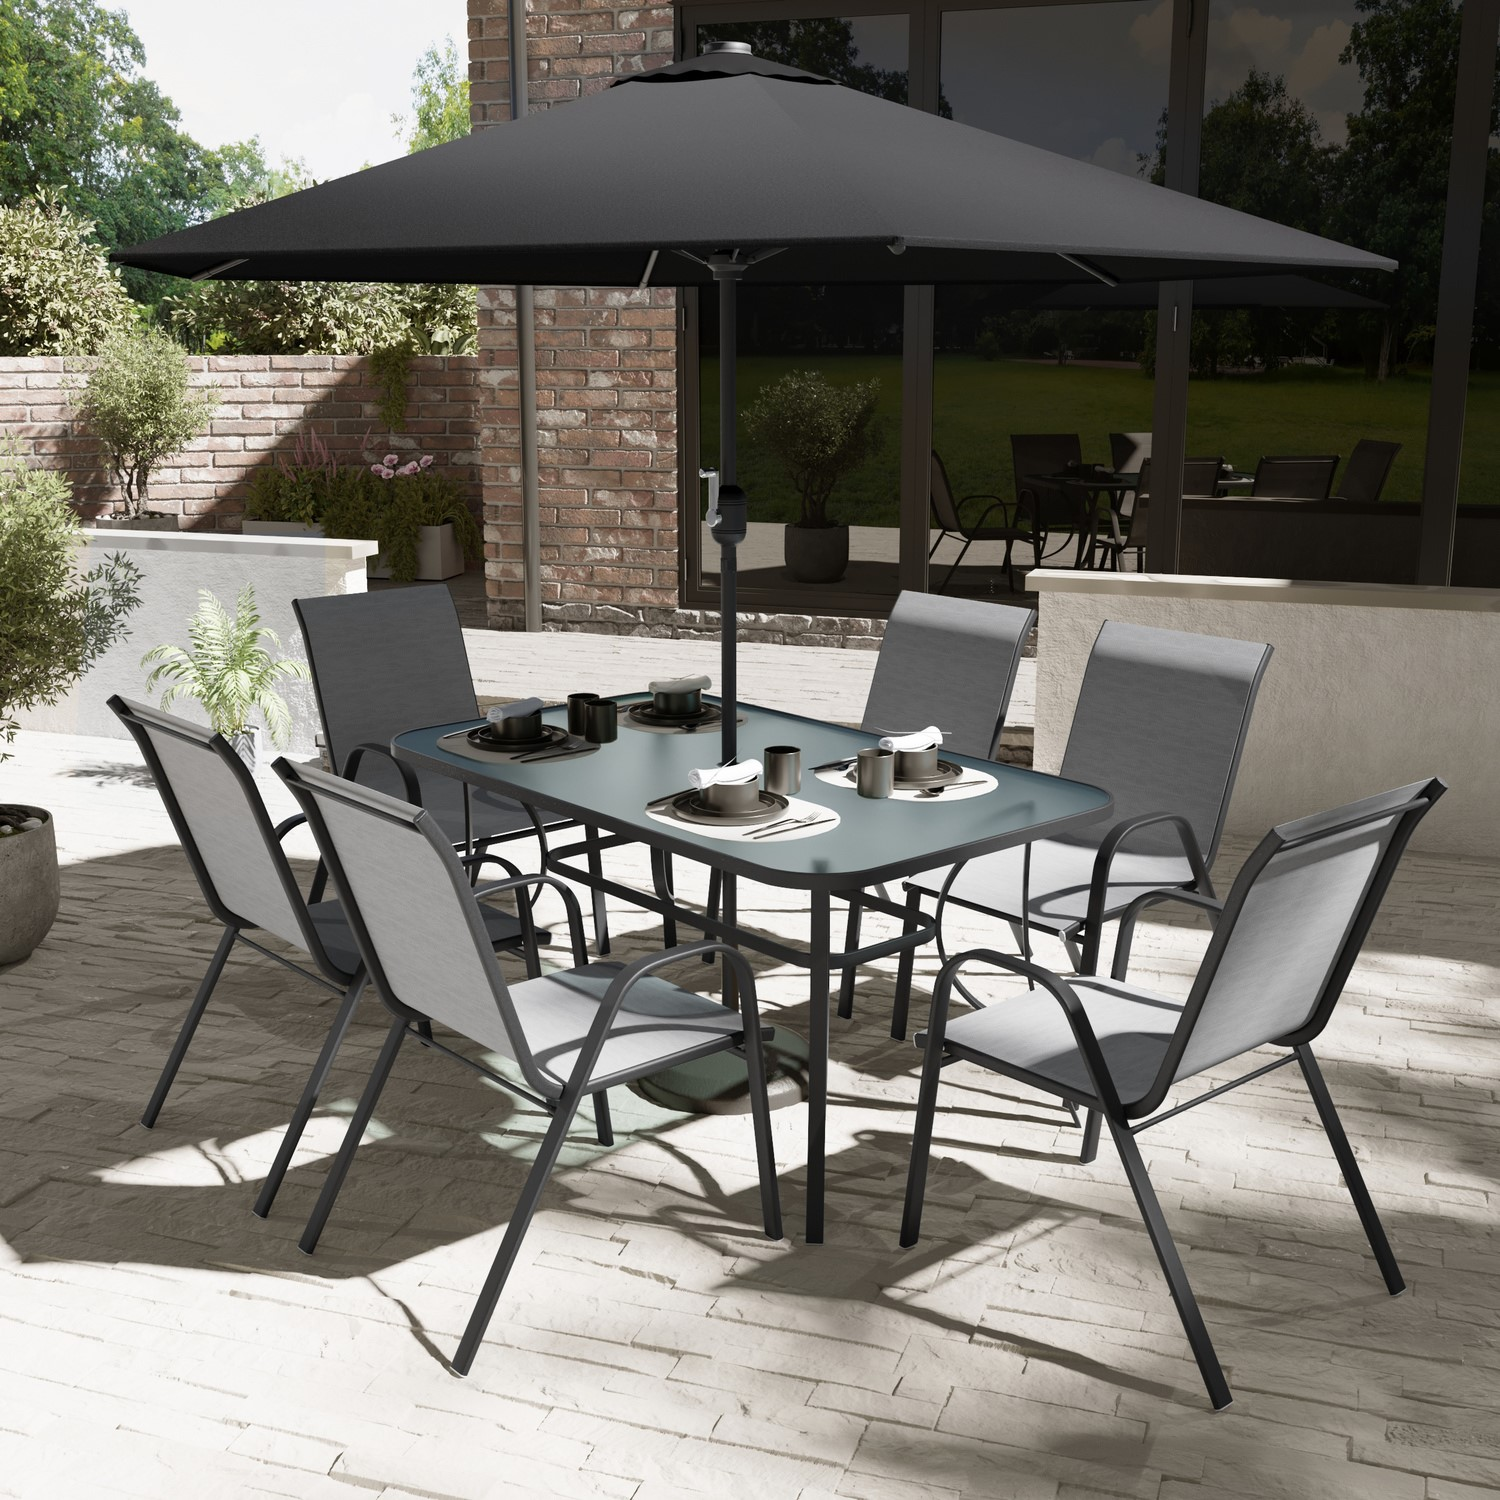 6 seater outdoor dining set with parasol grey and black